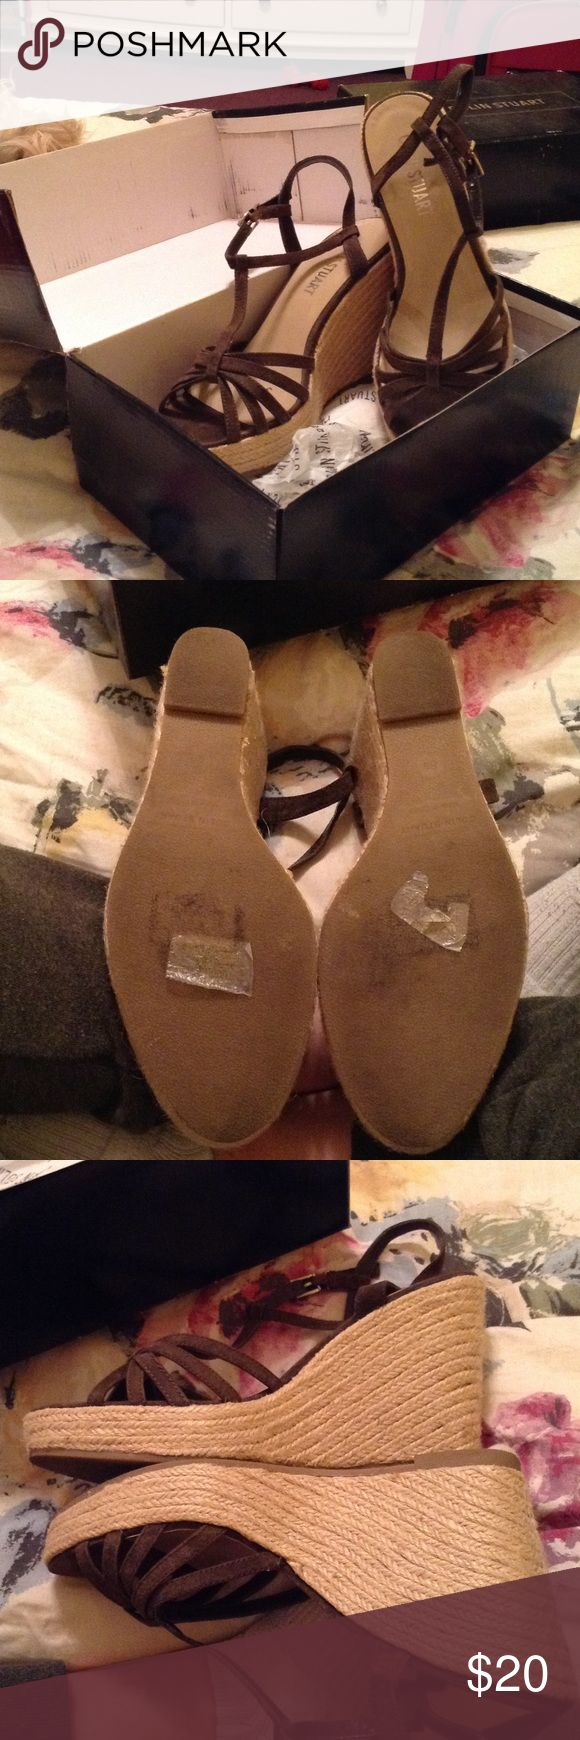 Colin Stuart espadrilles Brown Strappy espadrille wedges by Colin Stuart never worn Colin Stuart Shoes Espadrilles